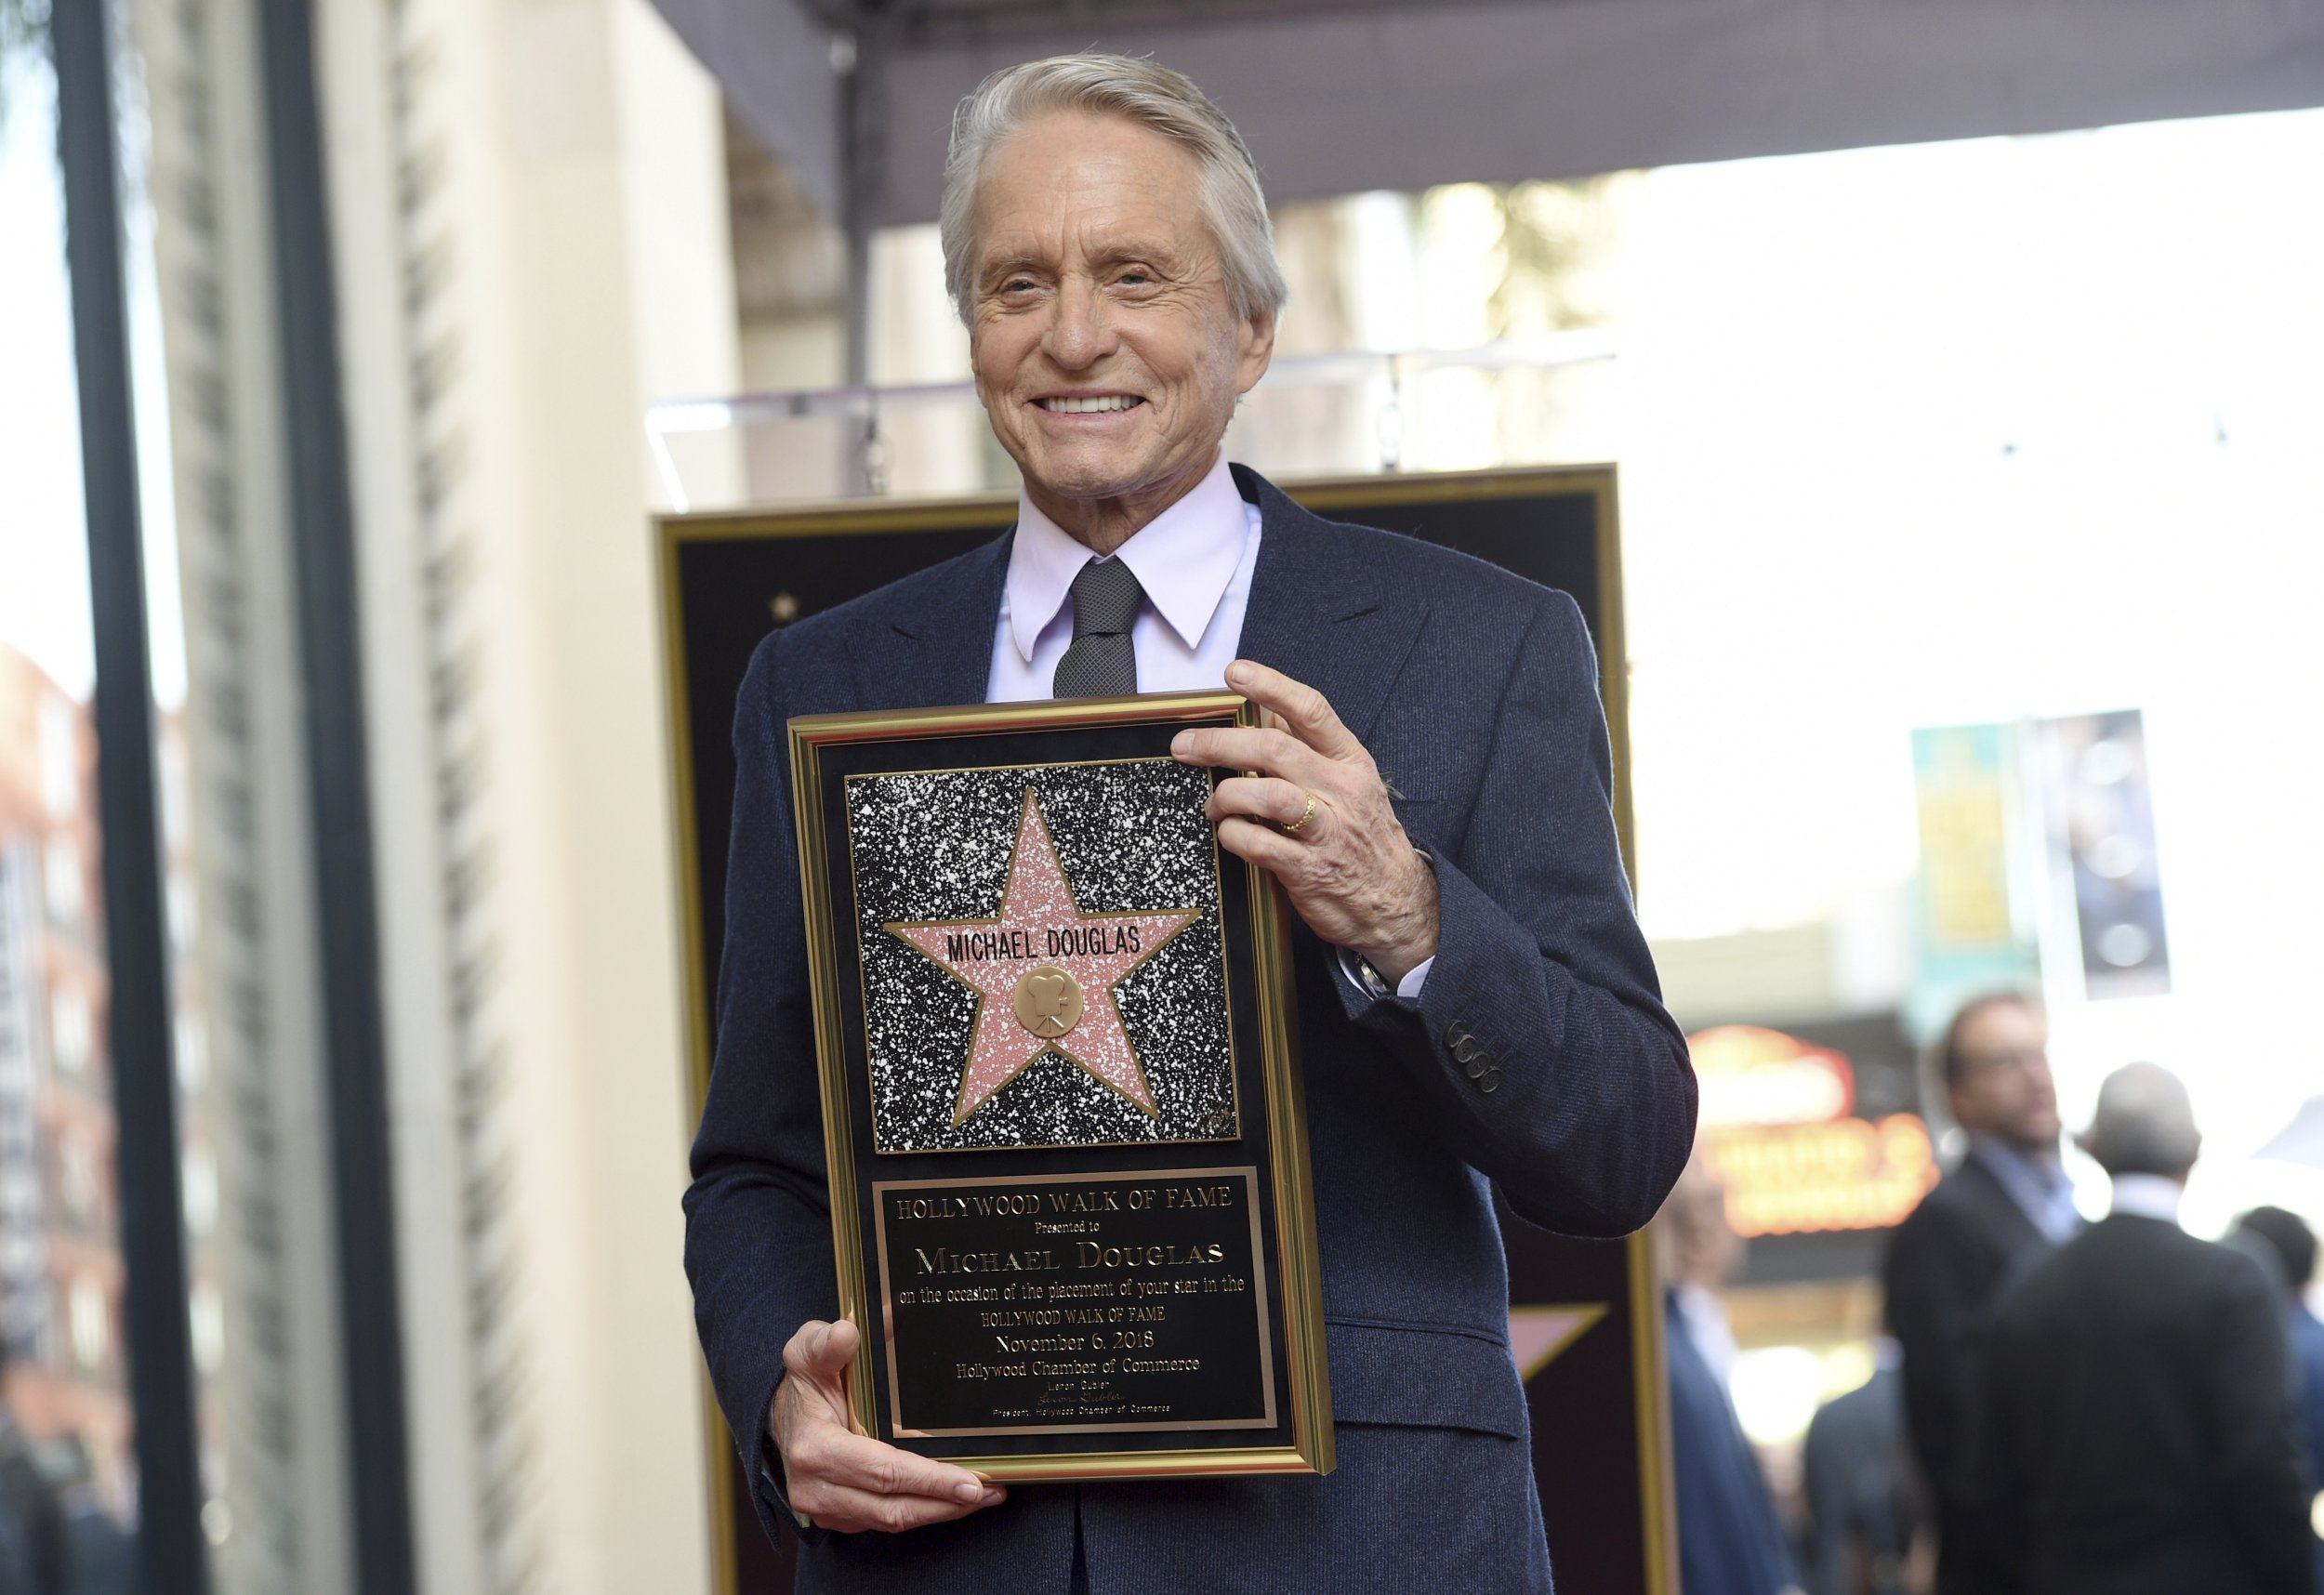 Actor Michael Douglas poses with a replica of his new star during a ceremony on the Hollywood Walk of Fame on Tuesday, Nov. 6, 2018, in Los Angeles. (Photo by Chris Pizzello/Invision/AP)